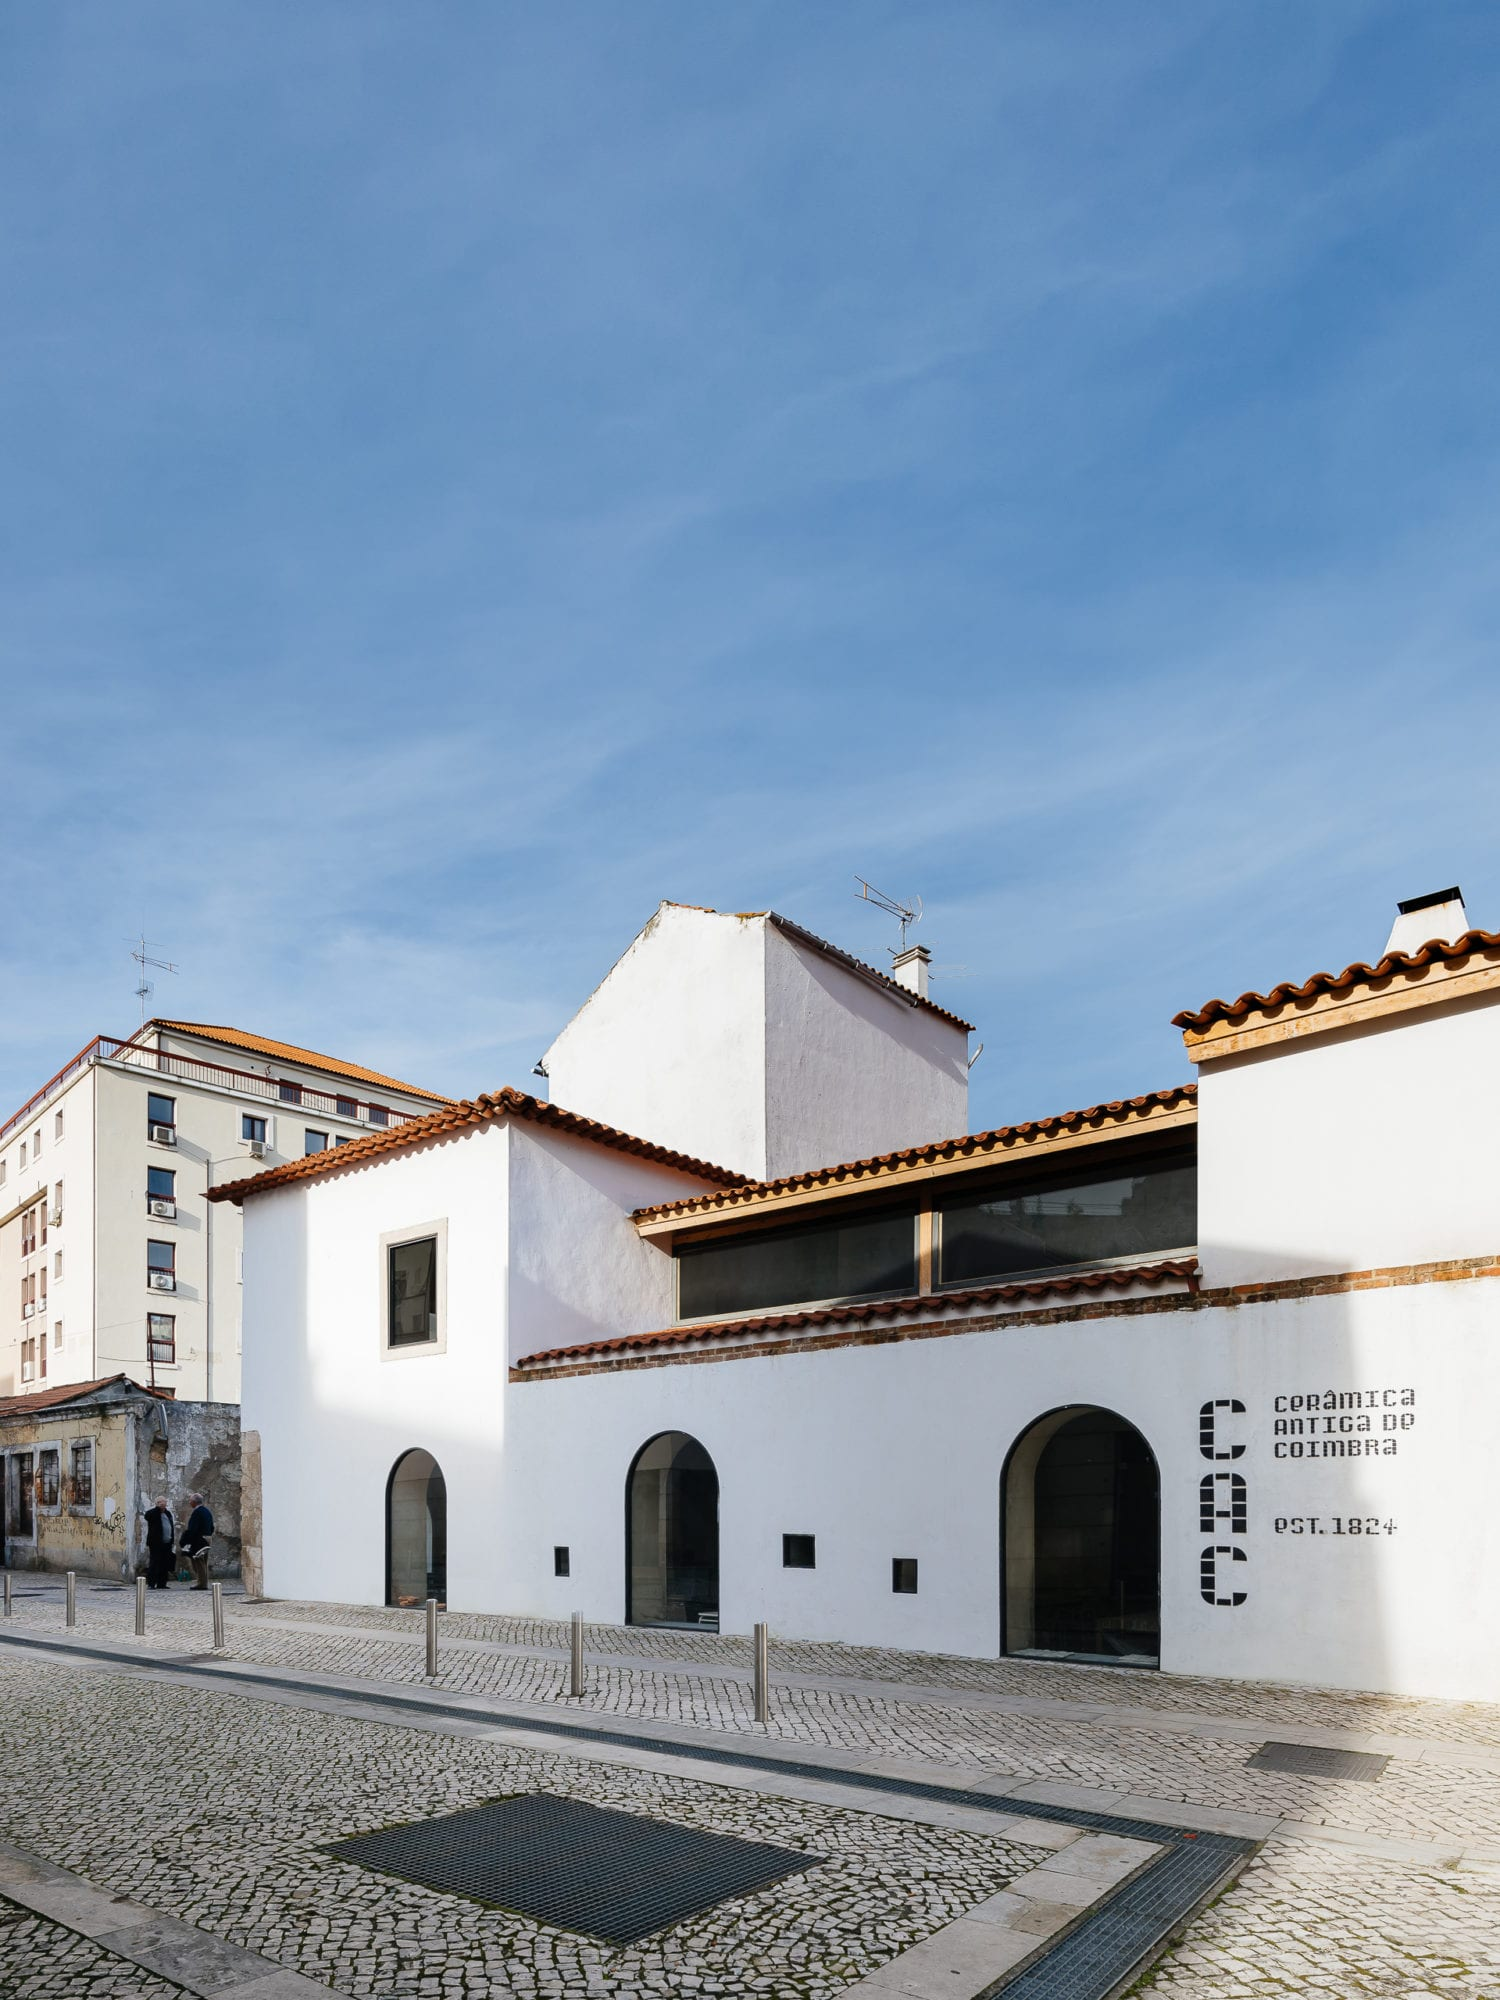 Luisa Bebiano And Atelier Do Corvo Renovation Old Ceramic Society Of Coimbra 18th Century Building Yellowtrace 01